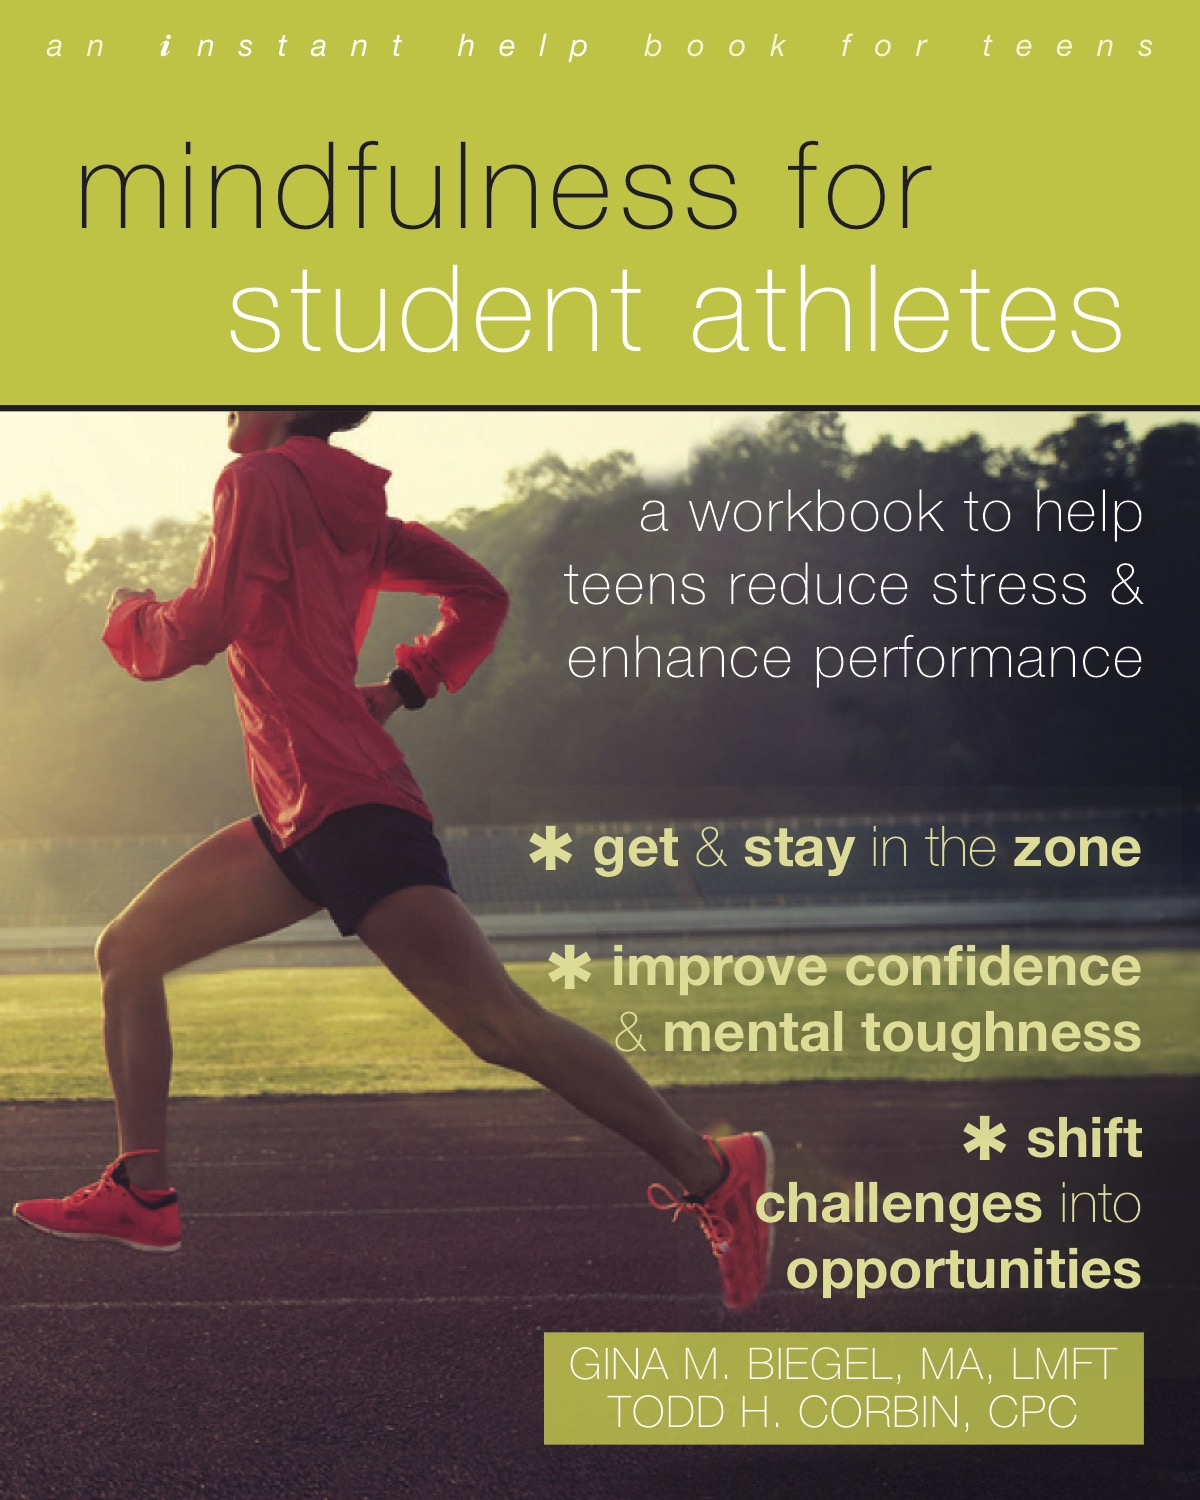 mindfulness_for_student_athletes.jpg